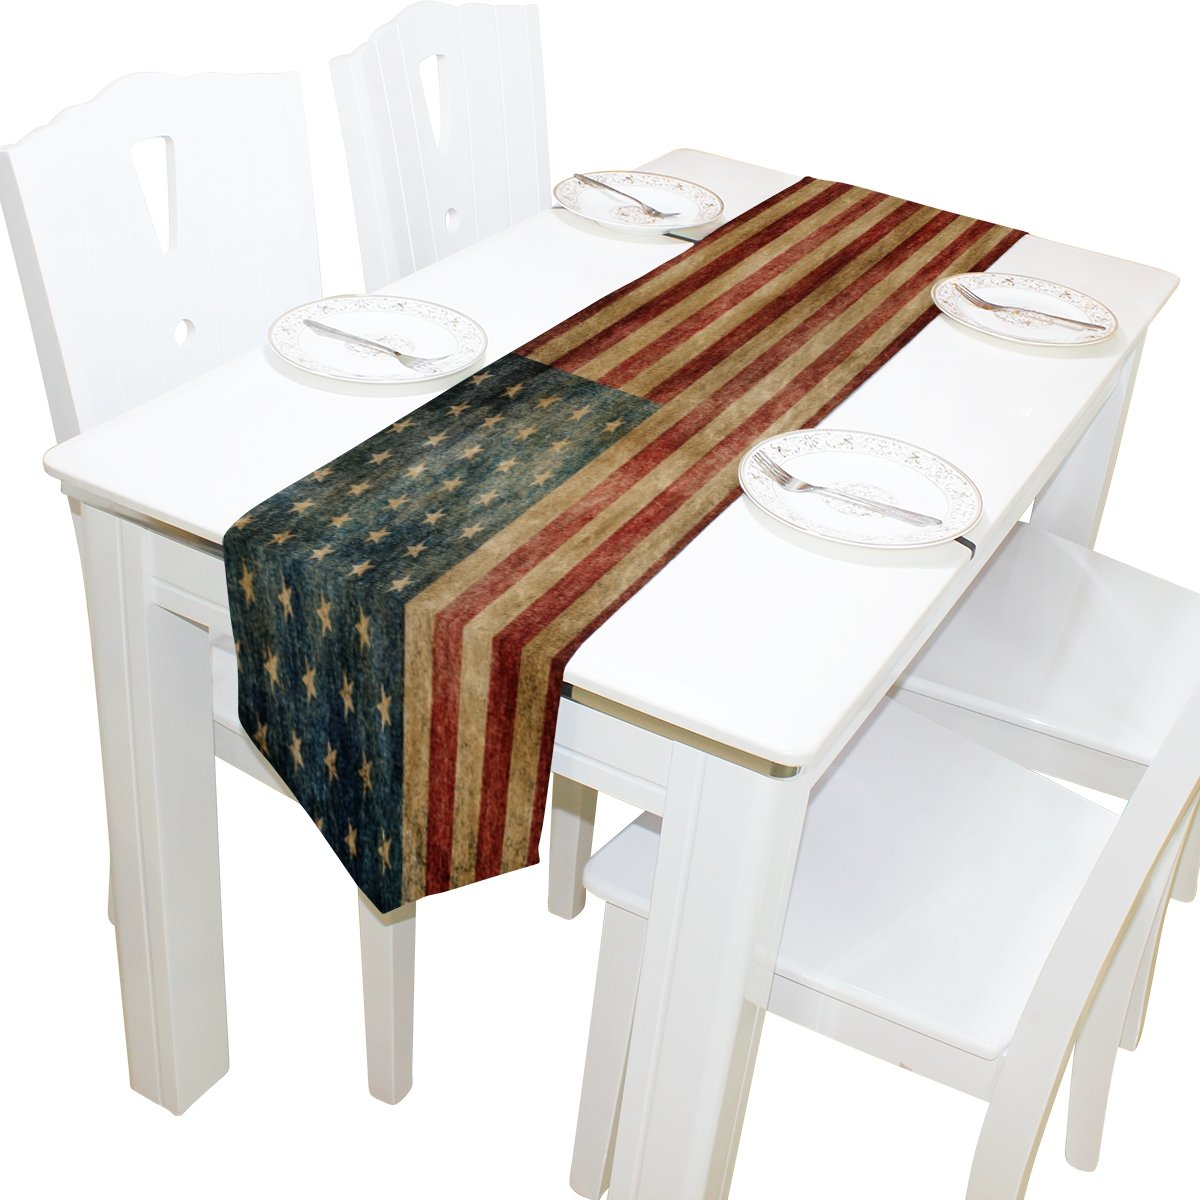 ALAZA Table Runner Home Decor, Vintage American Flag Table Cloth Runner Coffee Mat for Wedding Party Banquet Decoration 13 x 70 inches